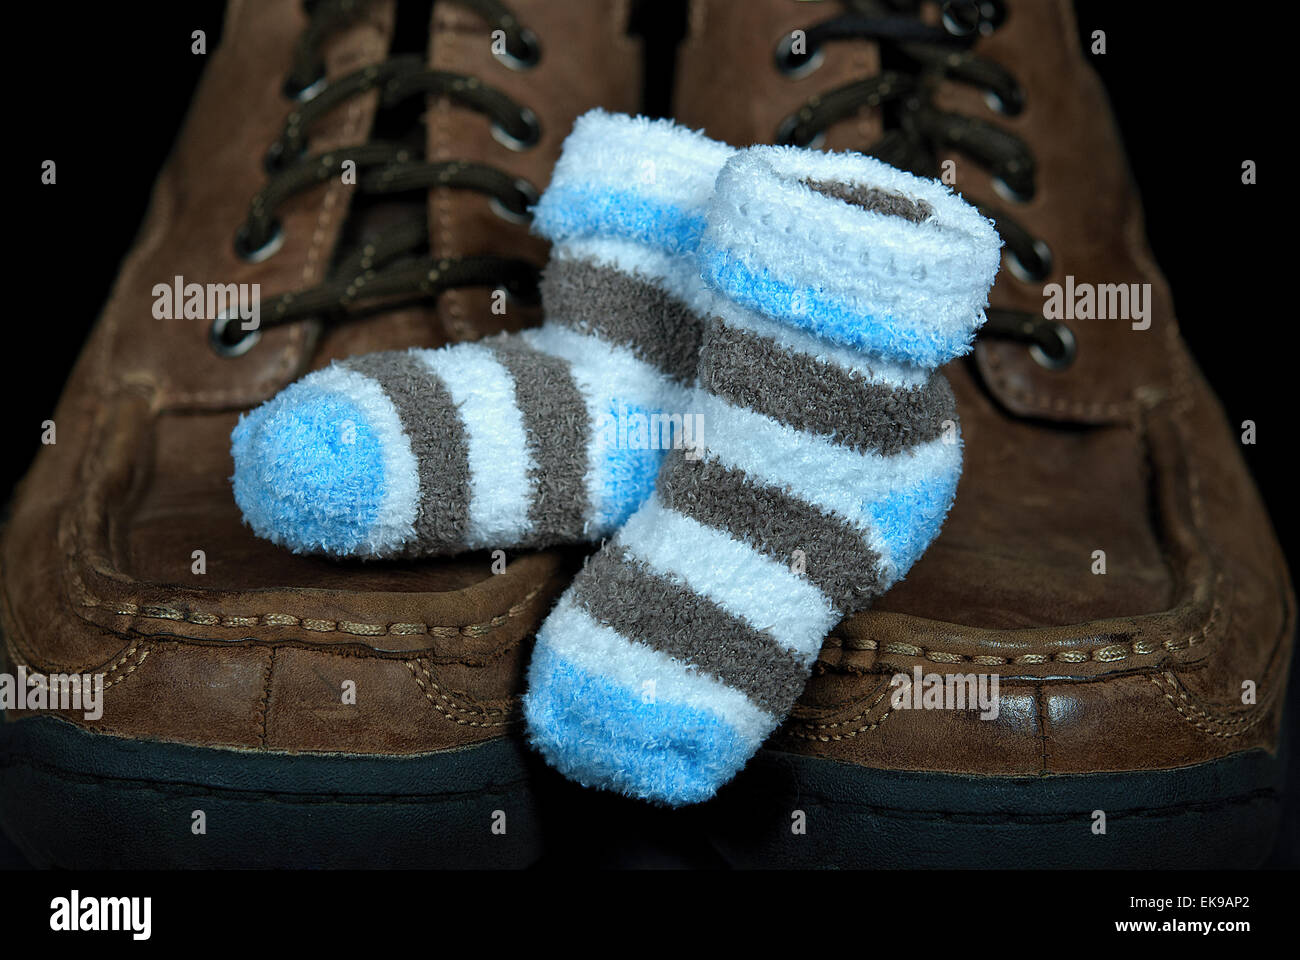 boy baby booties on adult men's shoes - Stock Image